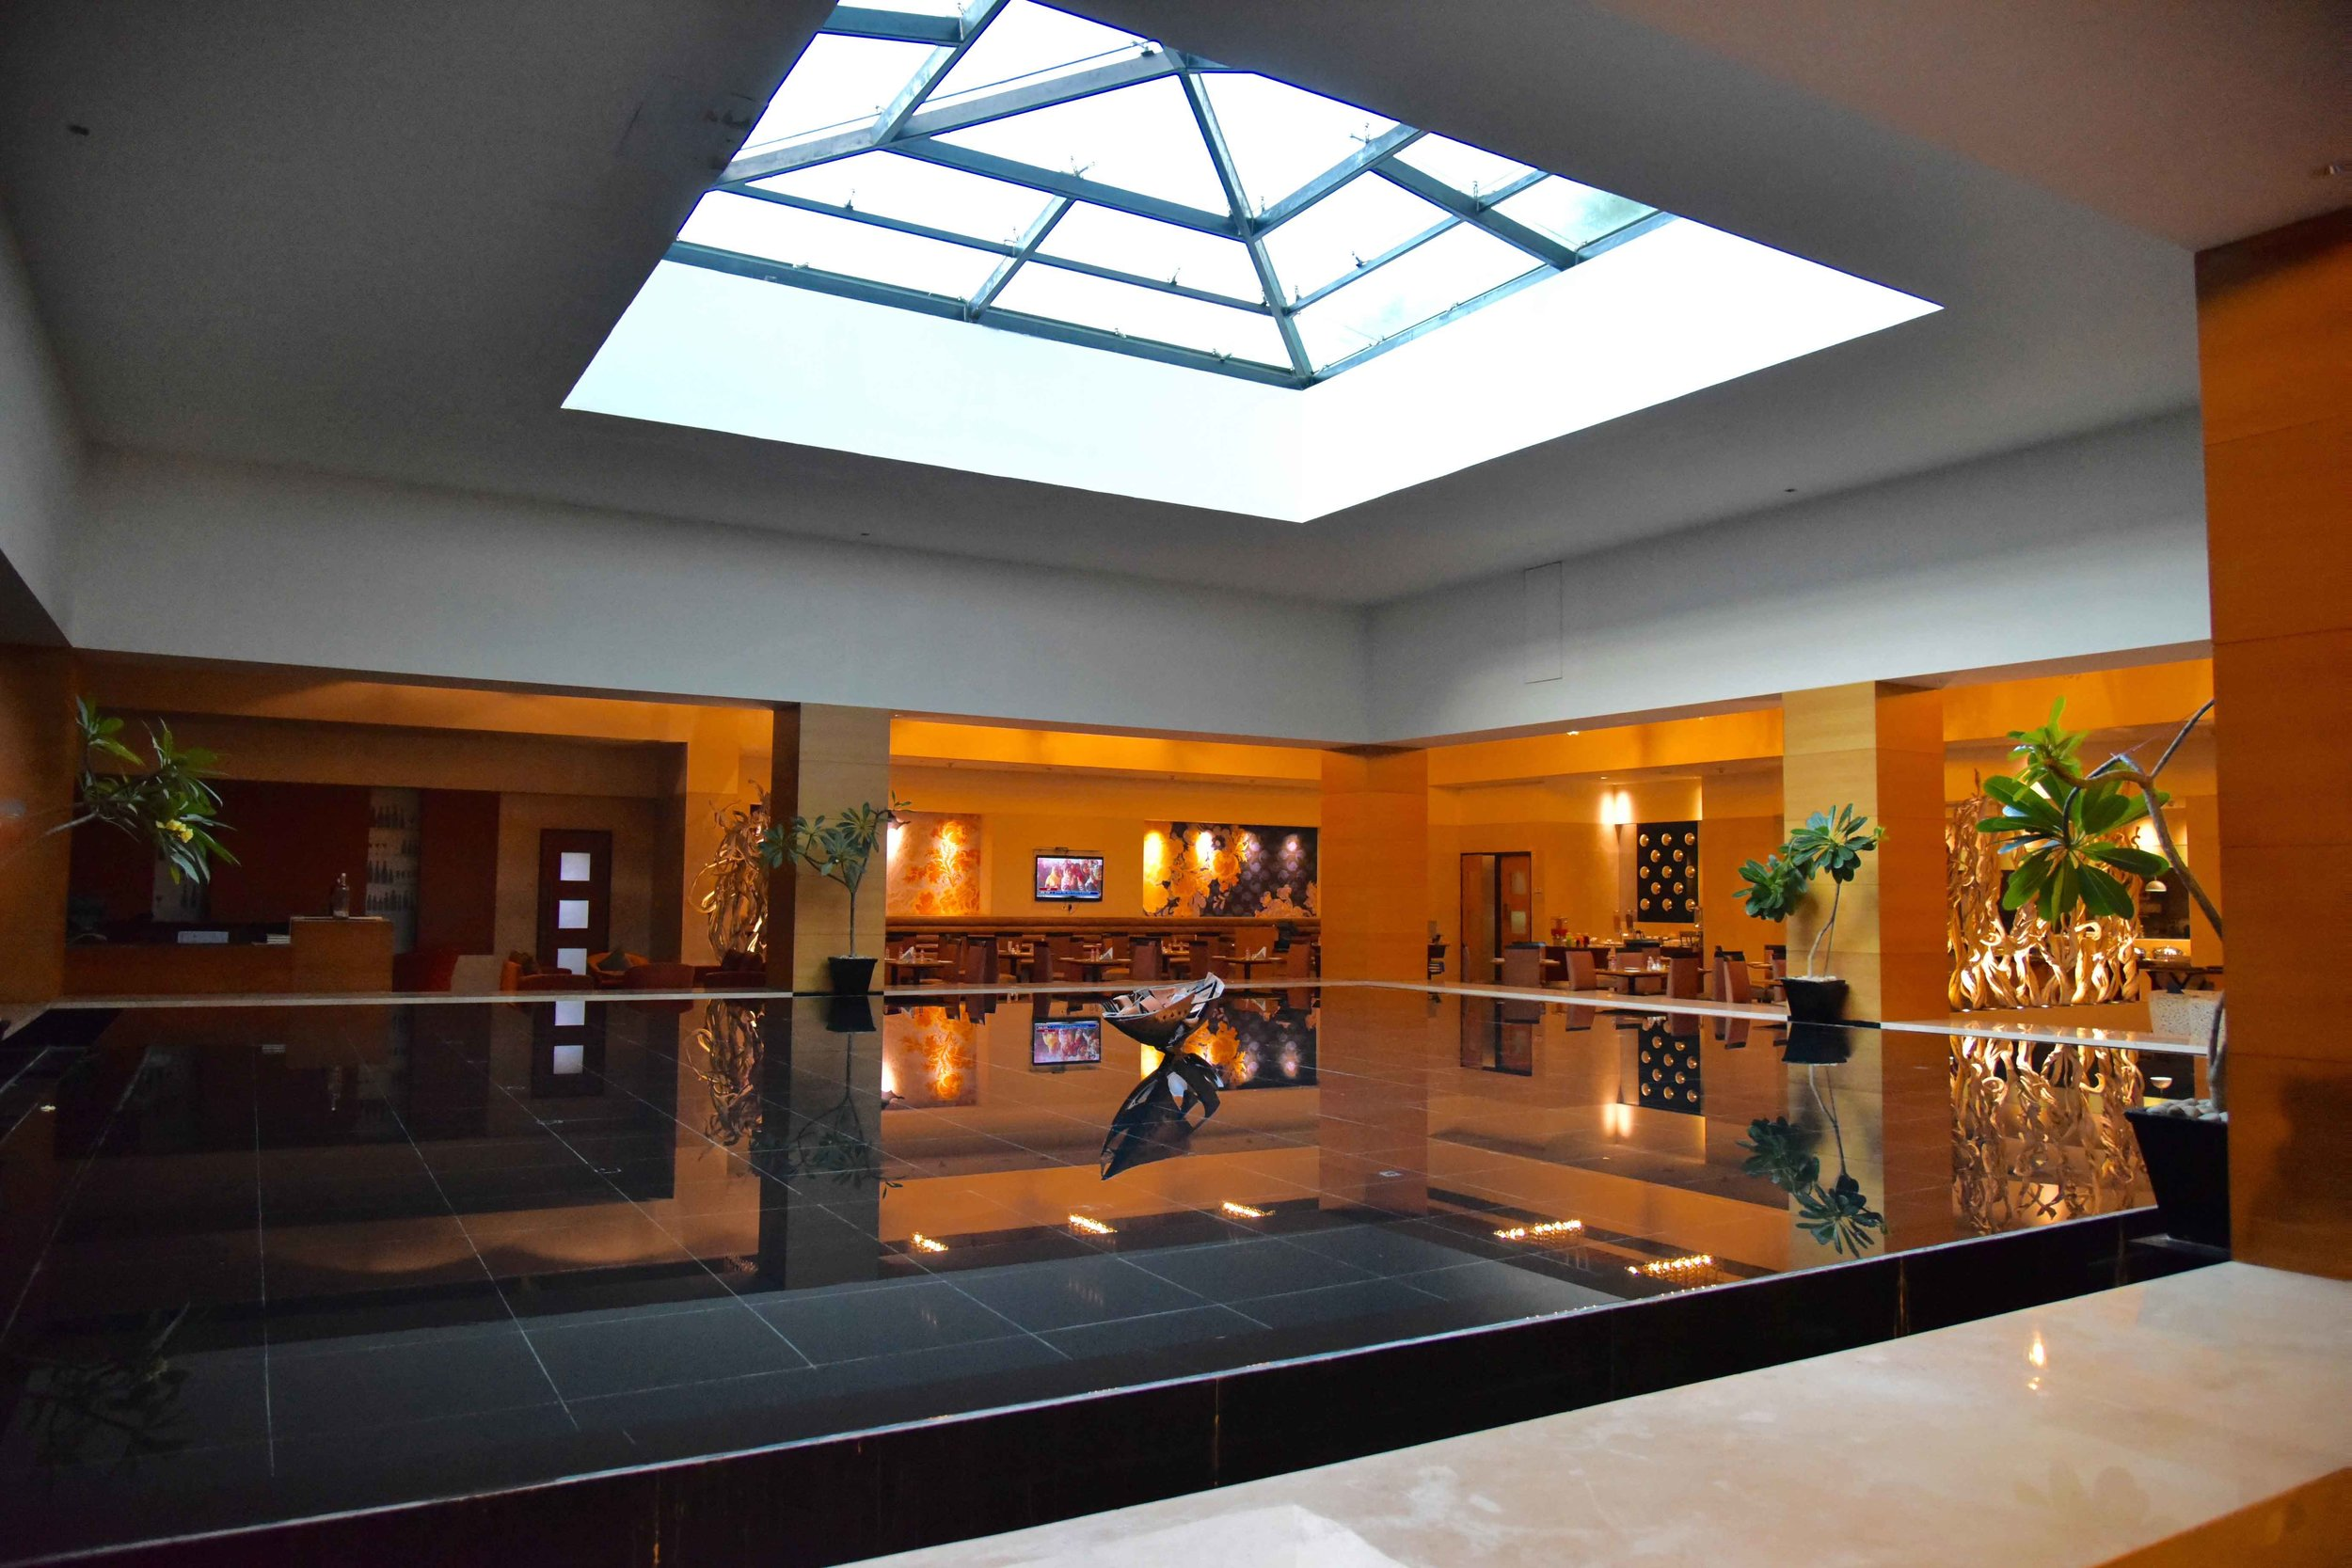 Lobby with coffee shop, Radisson Blu Hotel, Ranchi, India. Image@thingstodot.com